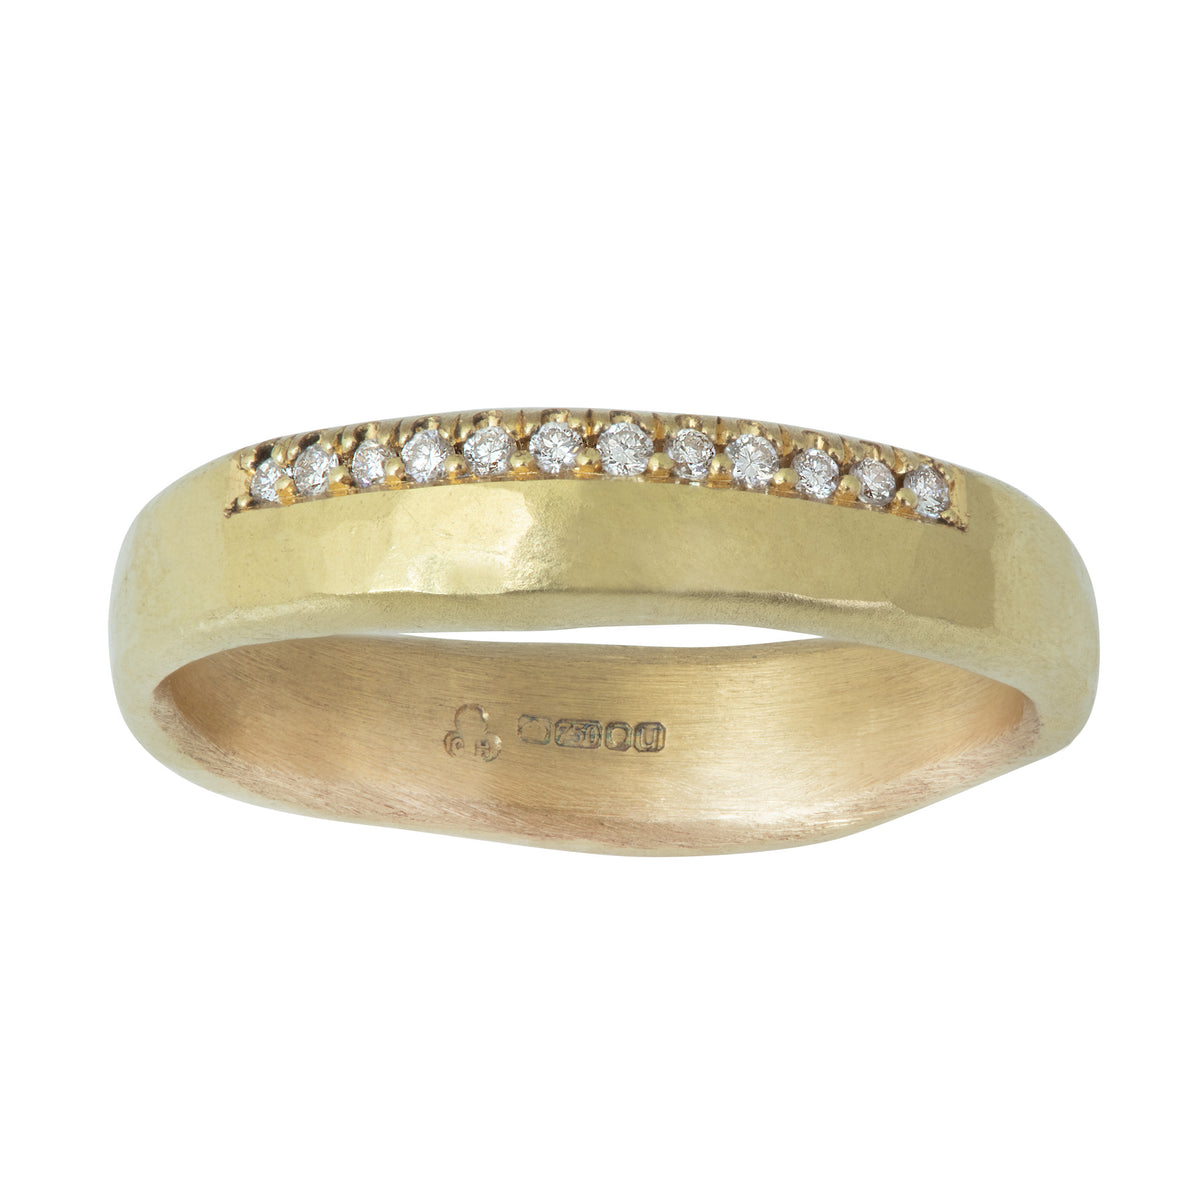 Faith Ring with 12 Diamonds in 18ct Yellow or 18ct White Gold